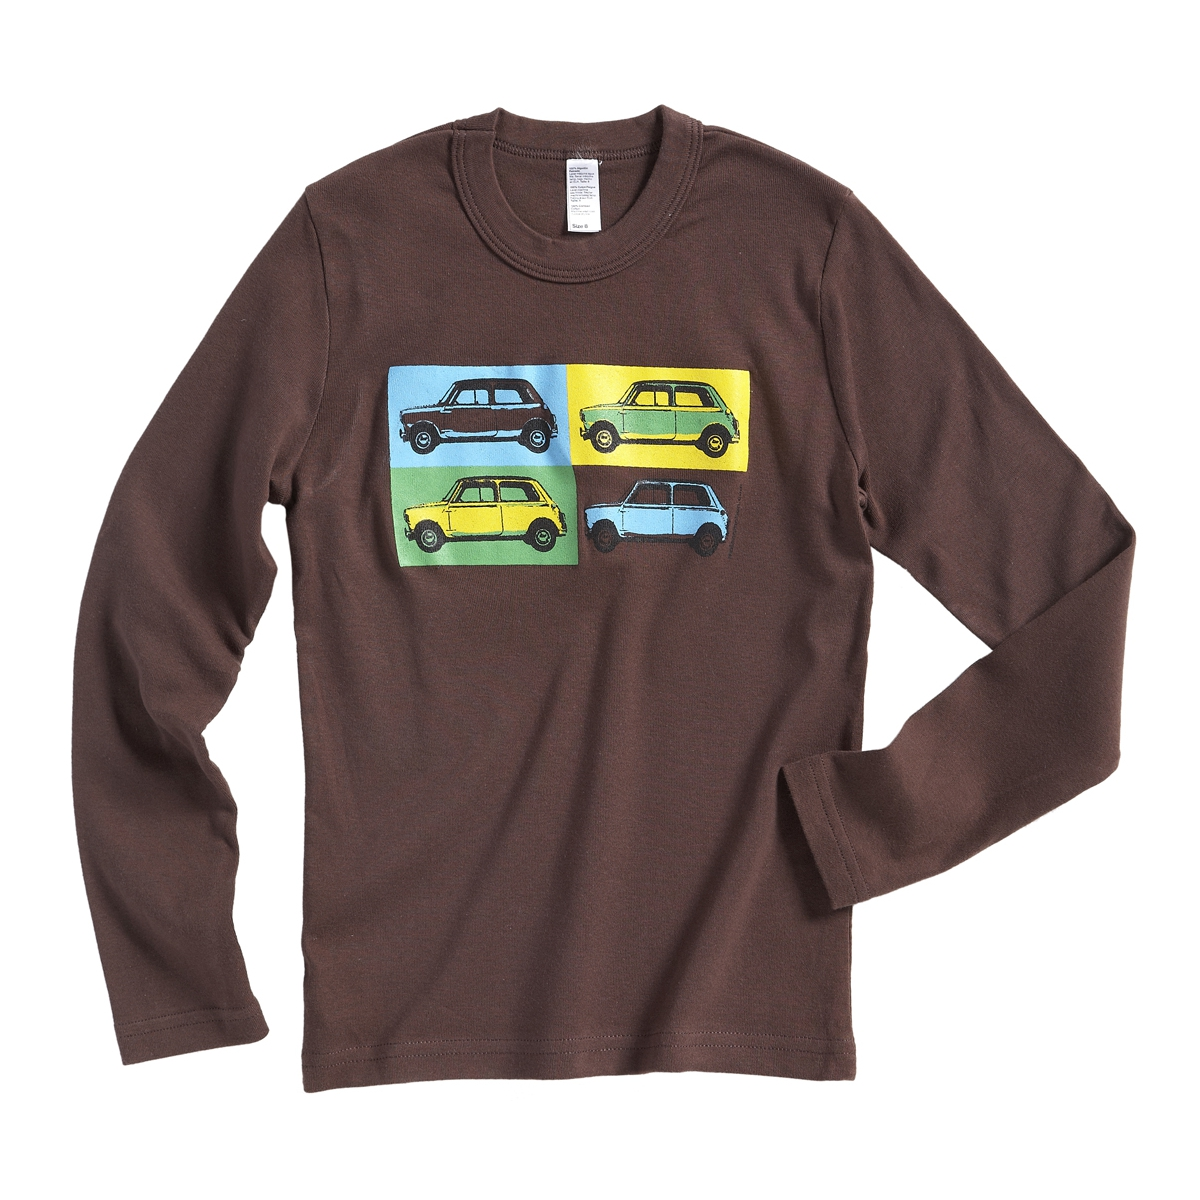 Austin Mini pop art t-shirt - brown